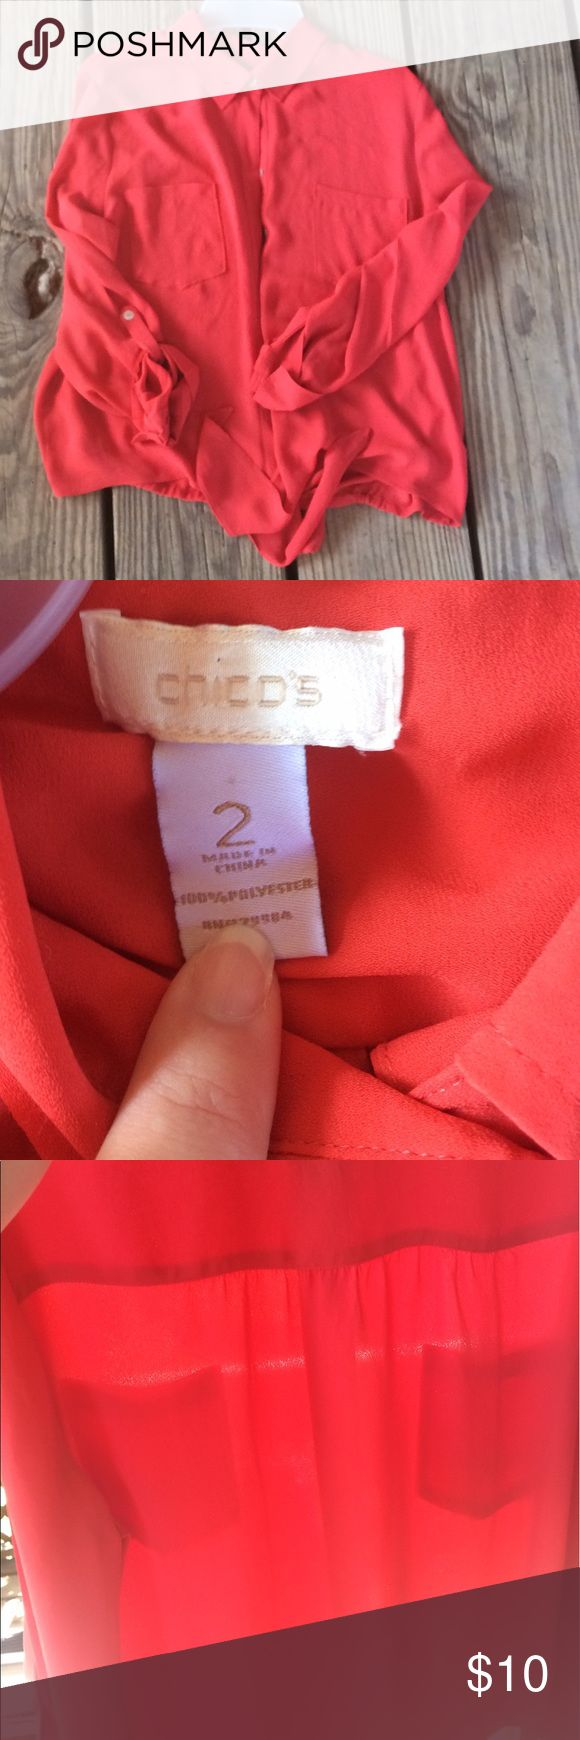 Chico's Tie Front Blouse Chico's tie front blouse. Like New Condition! Size 2. Feel free to ask questions! Chico's Tops Blouses